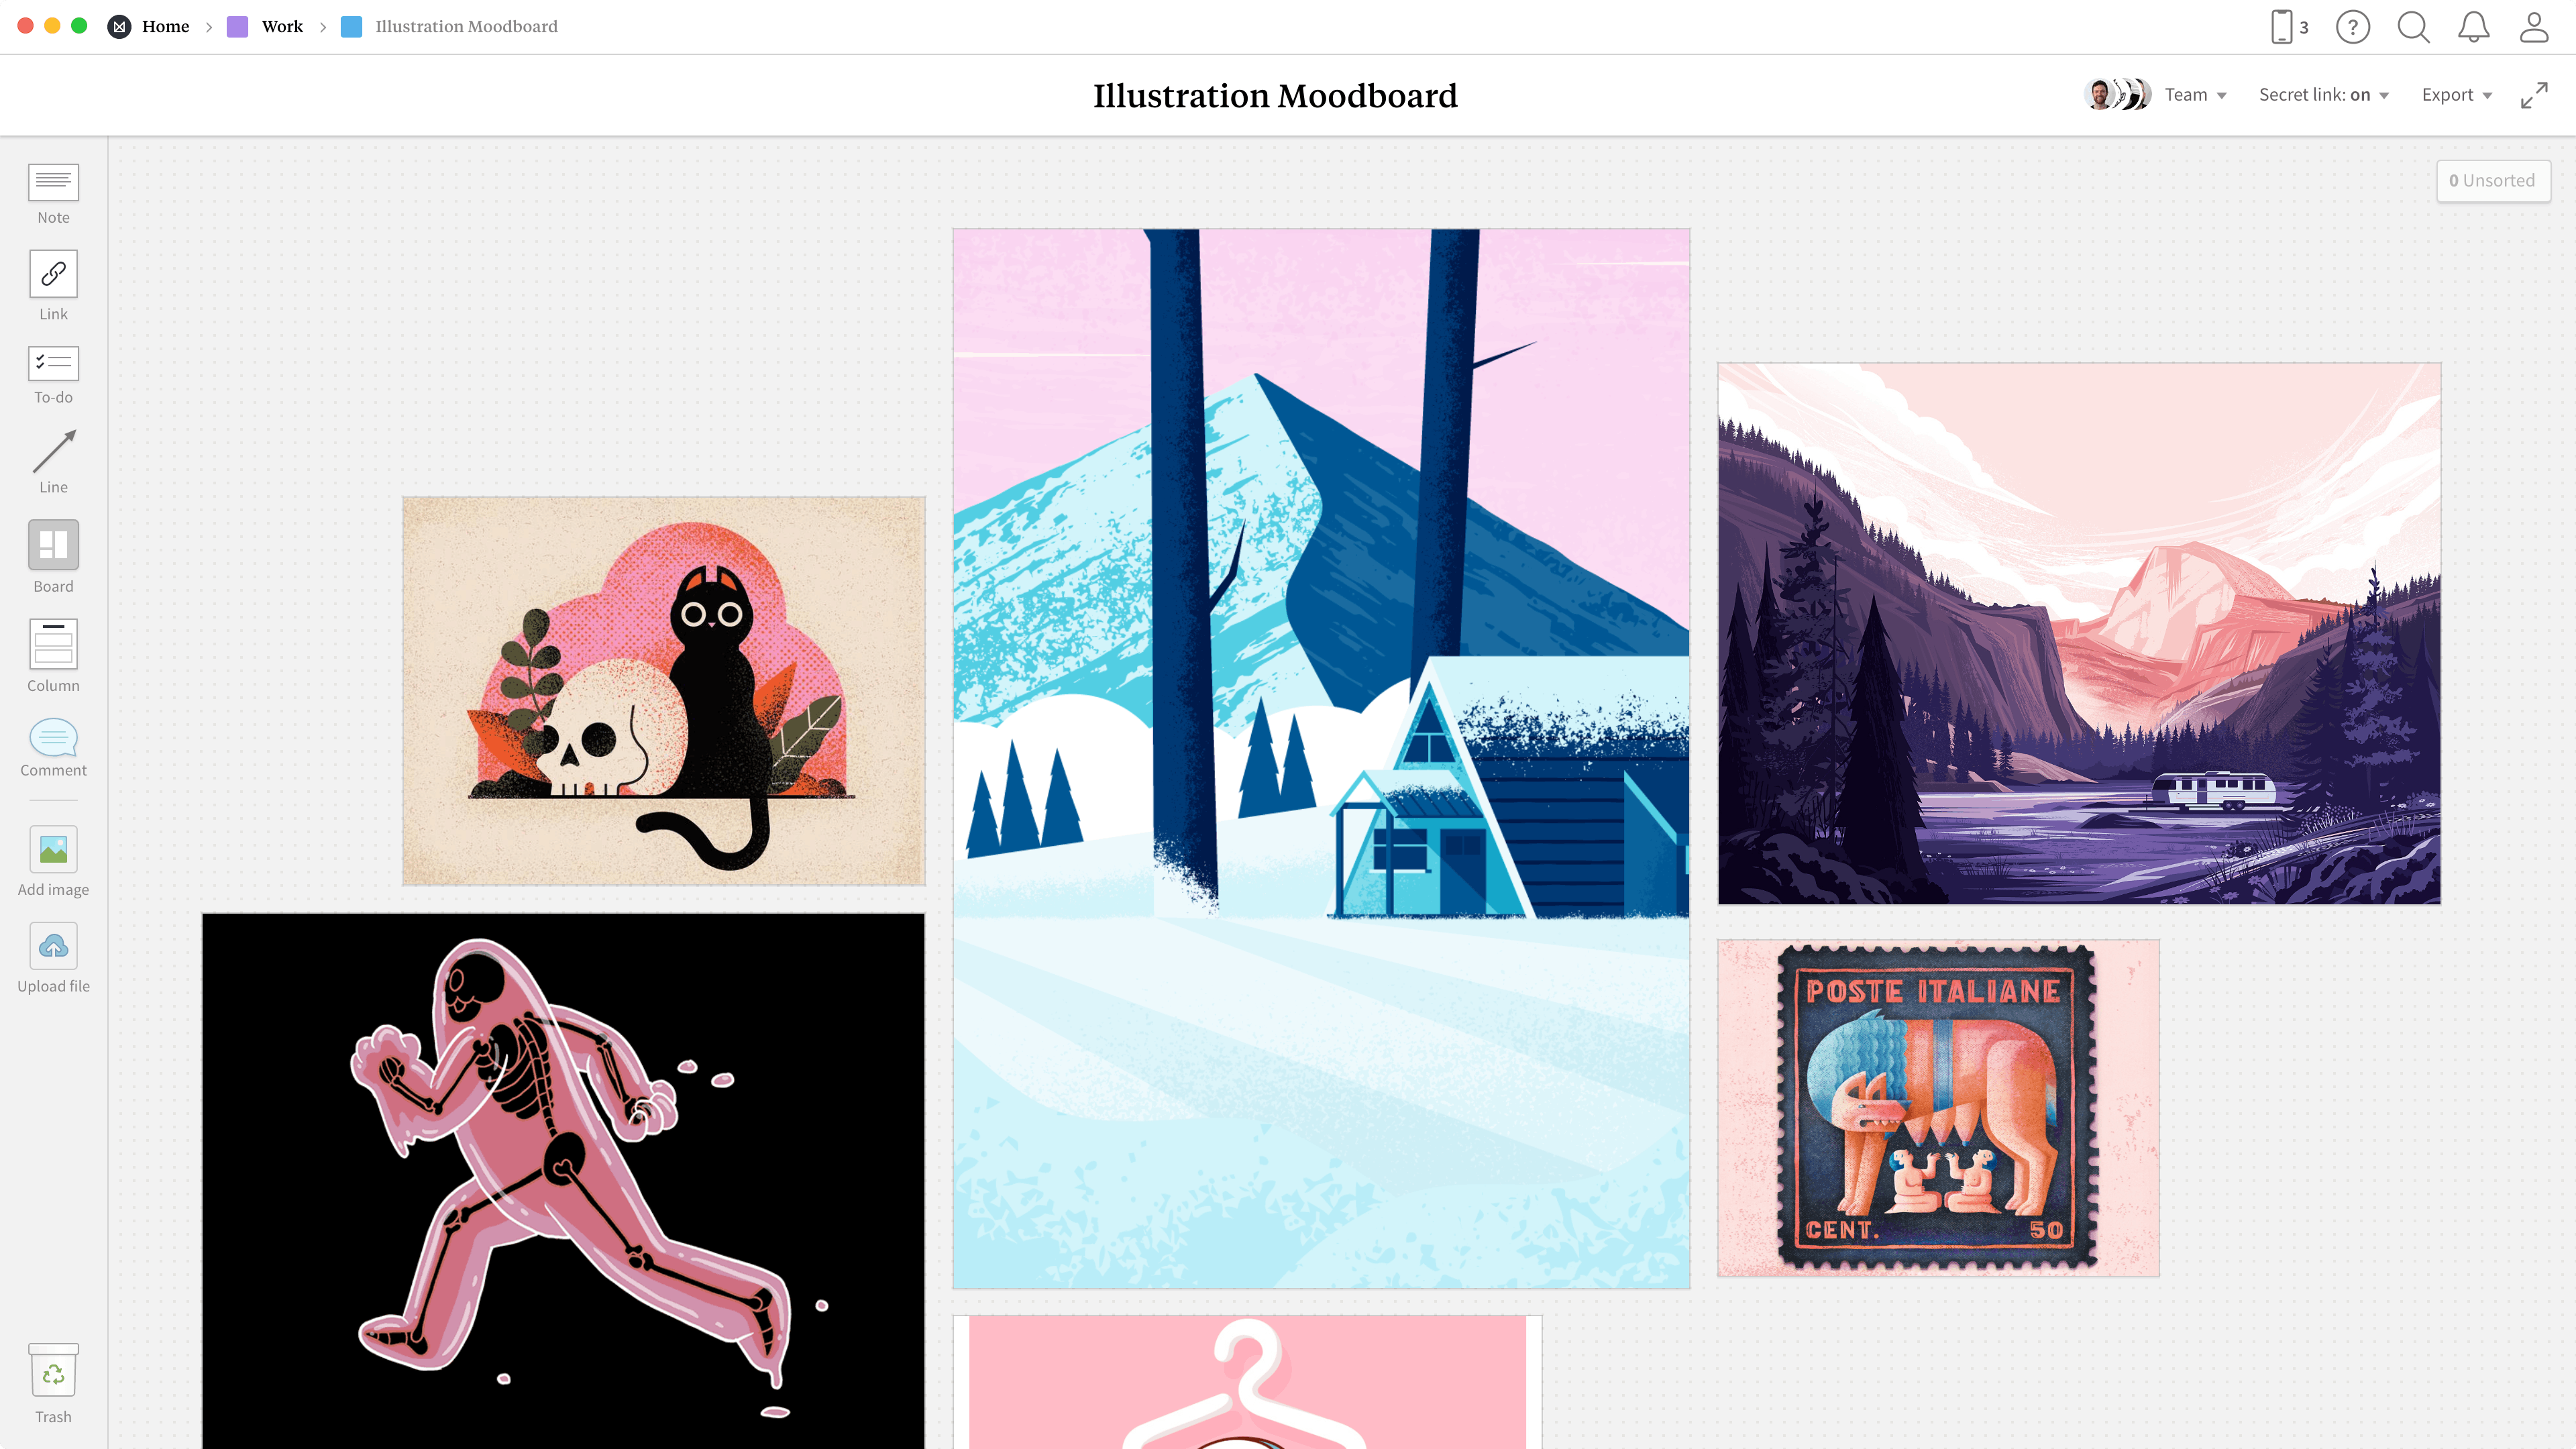 Completed Illustrative Moodboard template in Milanote app